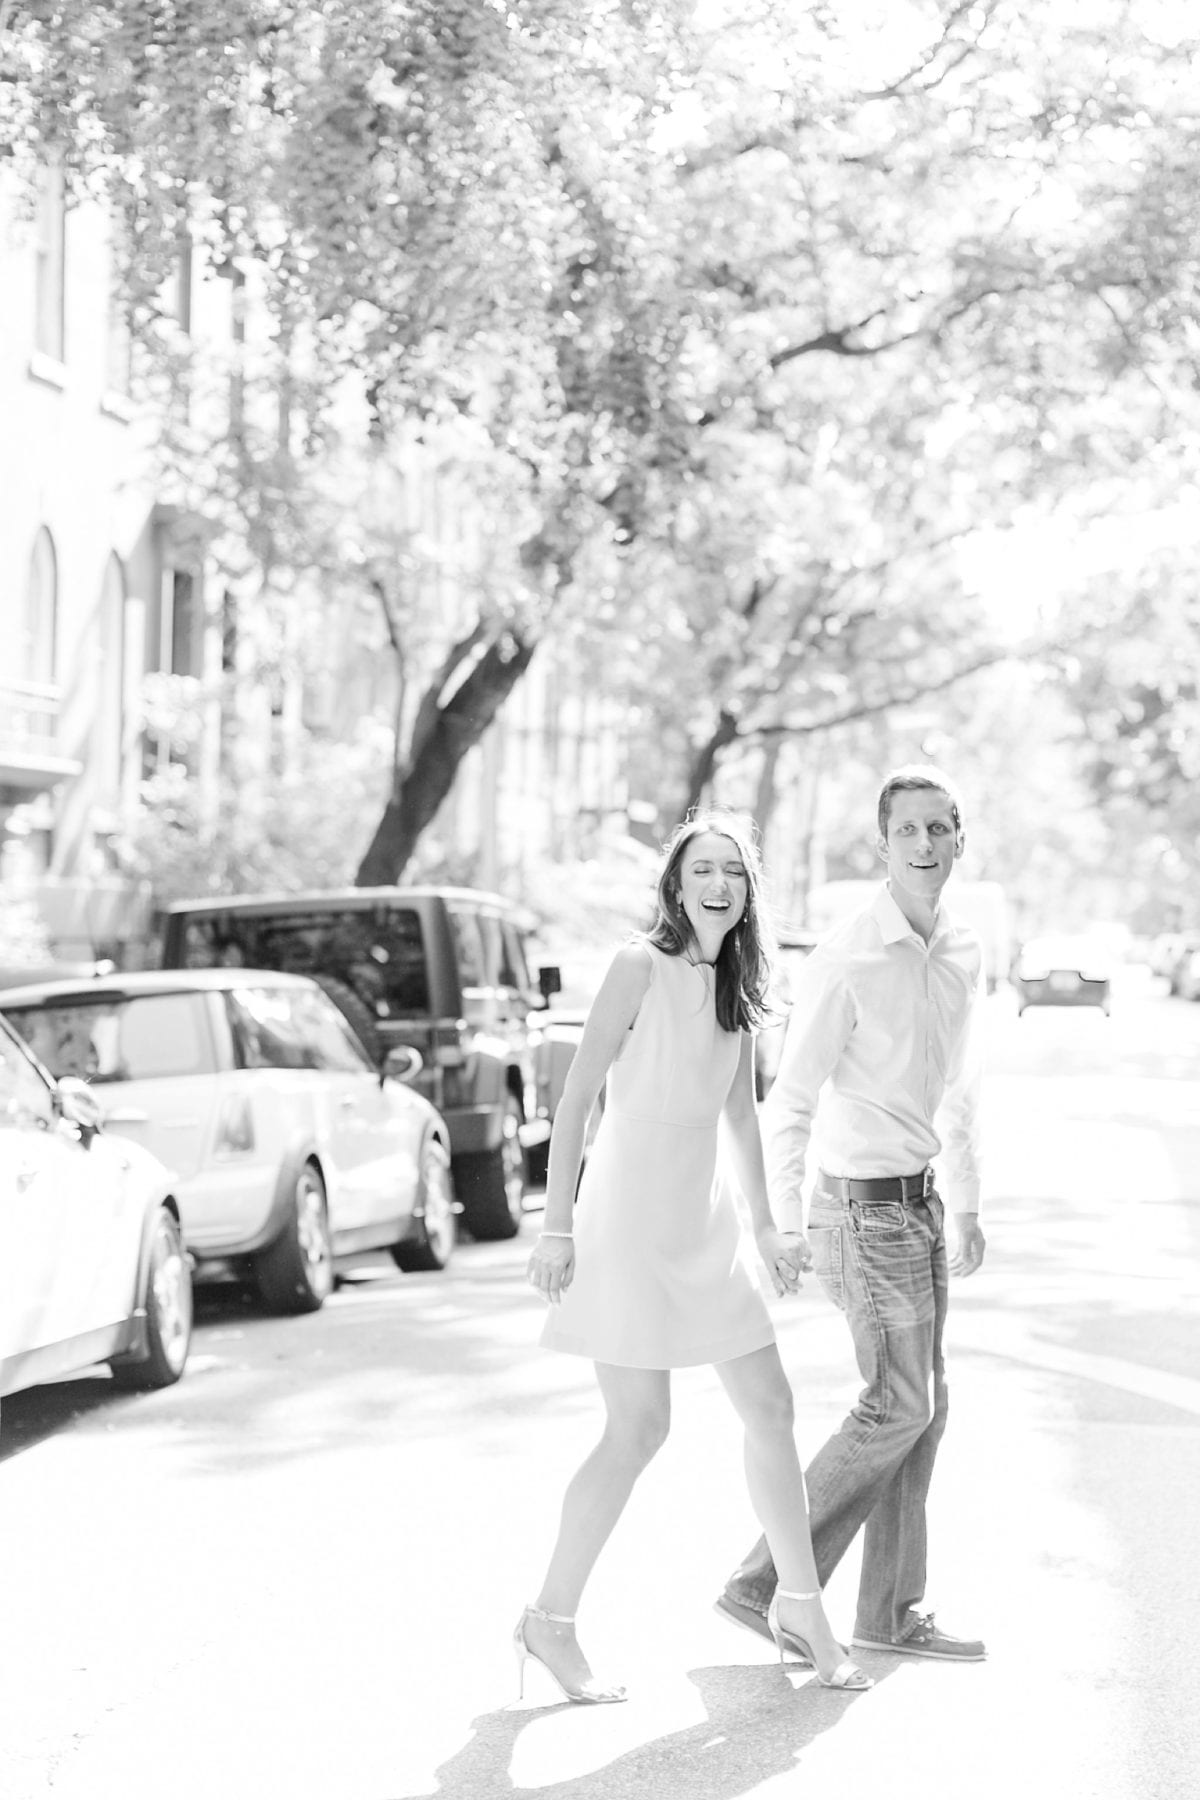 West Village Central Park Engagement Photos NYC Wedding Photographer Megan Kelsey Photography-88.jpg